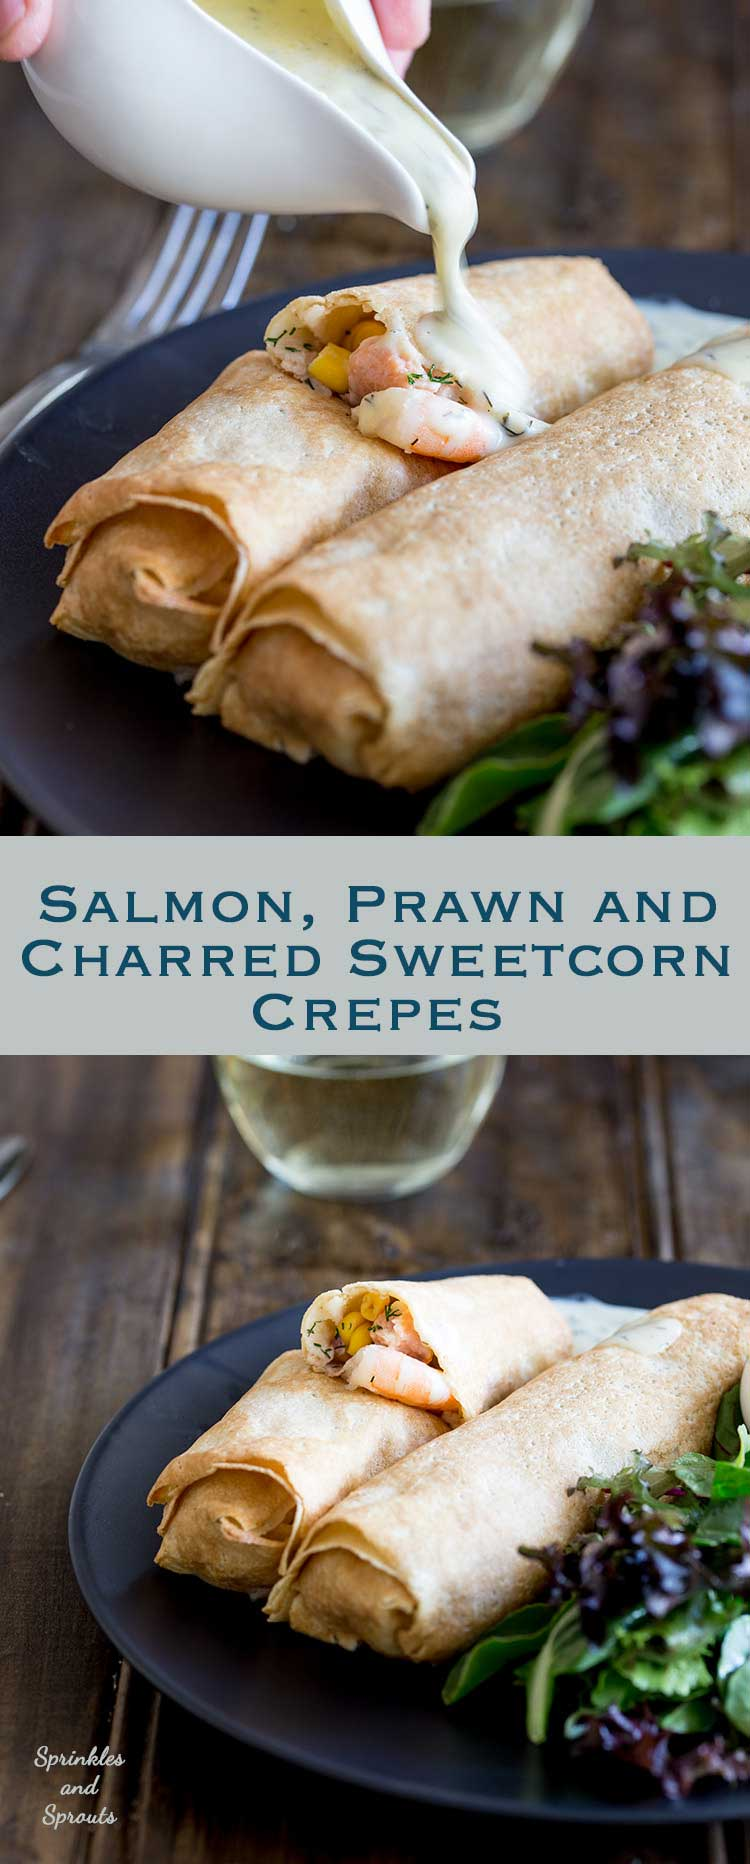 These delicate, thin crepes are filled with creamy delicious salmon and king prawns, some sweet charred corn and then baked to a crisp delicious perfection. All served with a creamy dill sauce. Delicious and elegant. Perfect for entertaining, these are sure to be a hit!